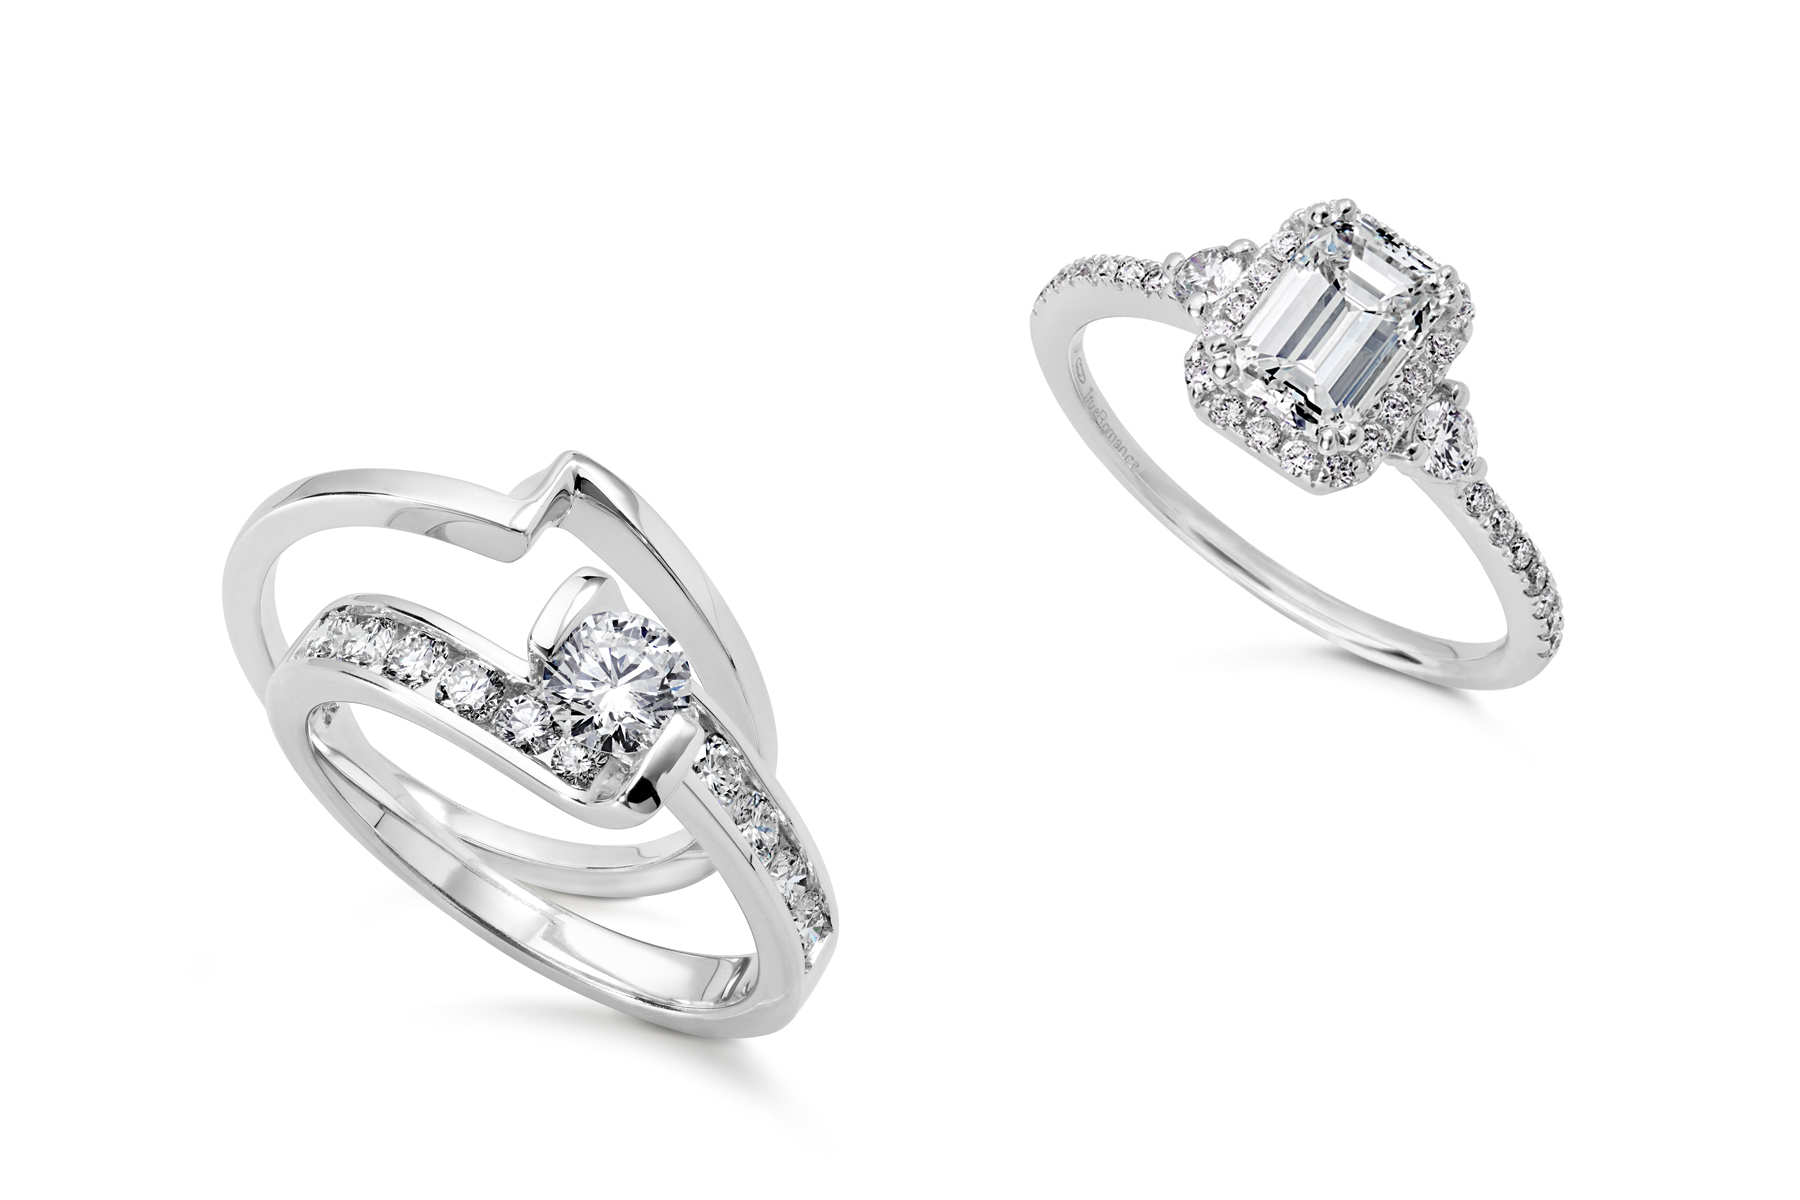 DIAMOND RINGS | JEWELRY DESIGN CENTER